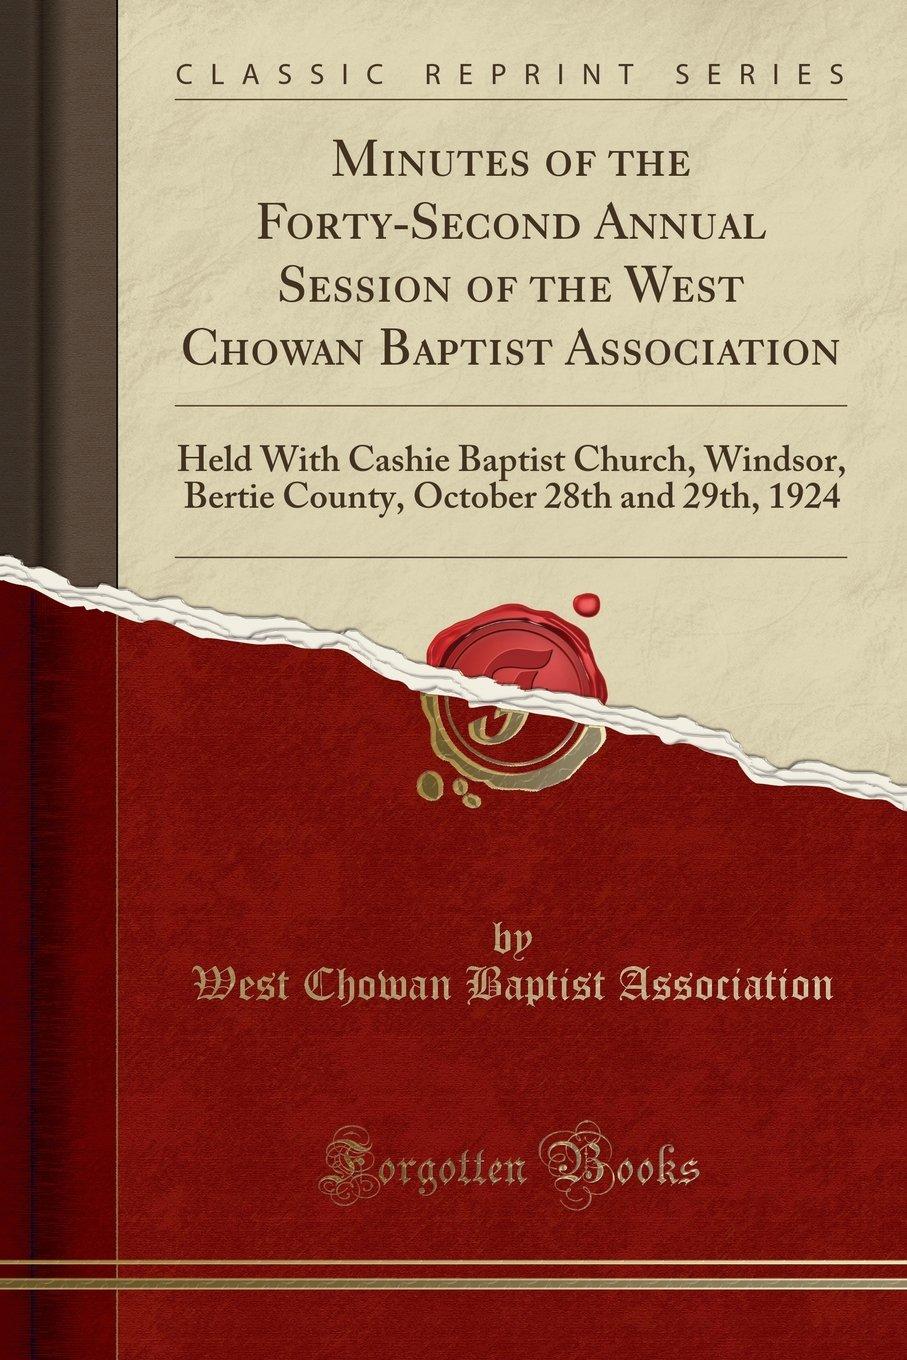 Read Online Minutes of the Forty-Second Annual Session of the West Chowan Baptist Association: Held with Cashie Baptist Church, Windsor, Bertie County, October 28th and 29th, 1924 (Classic Reprint) pdf